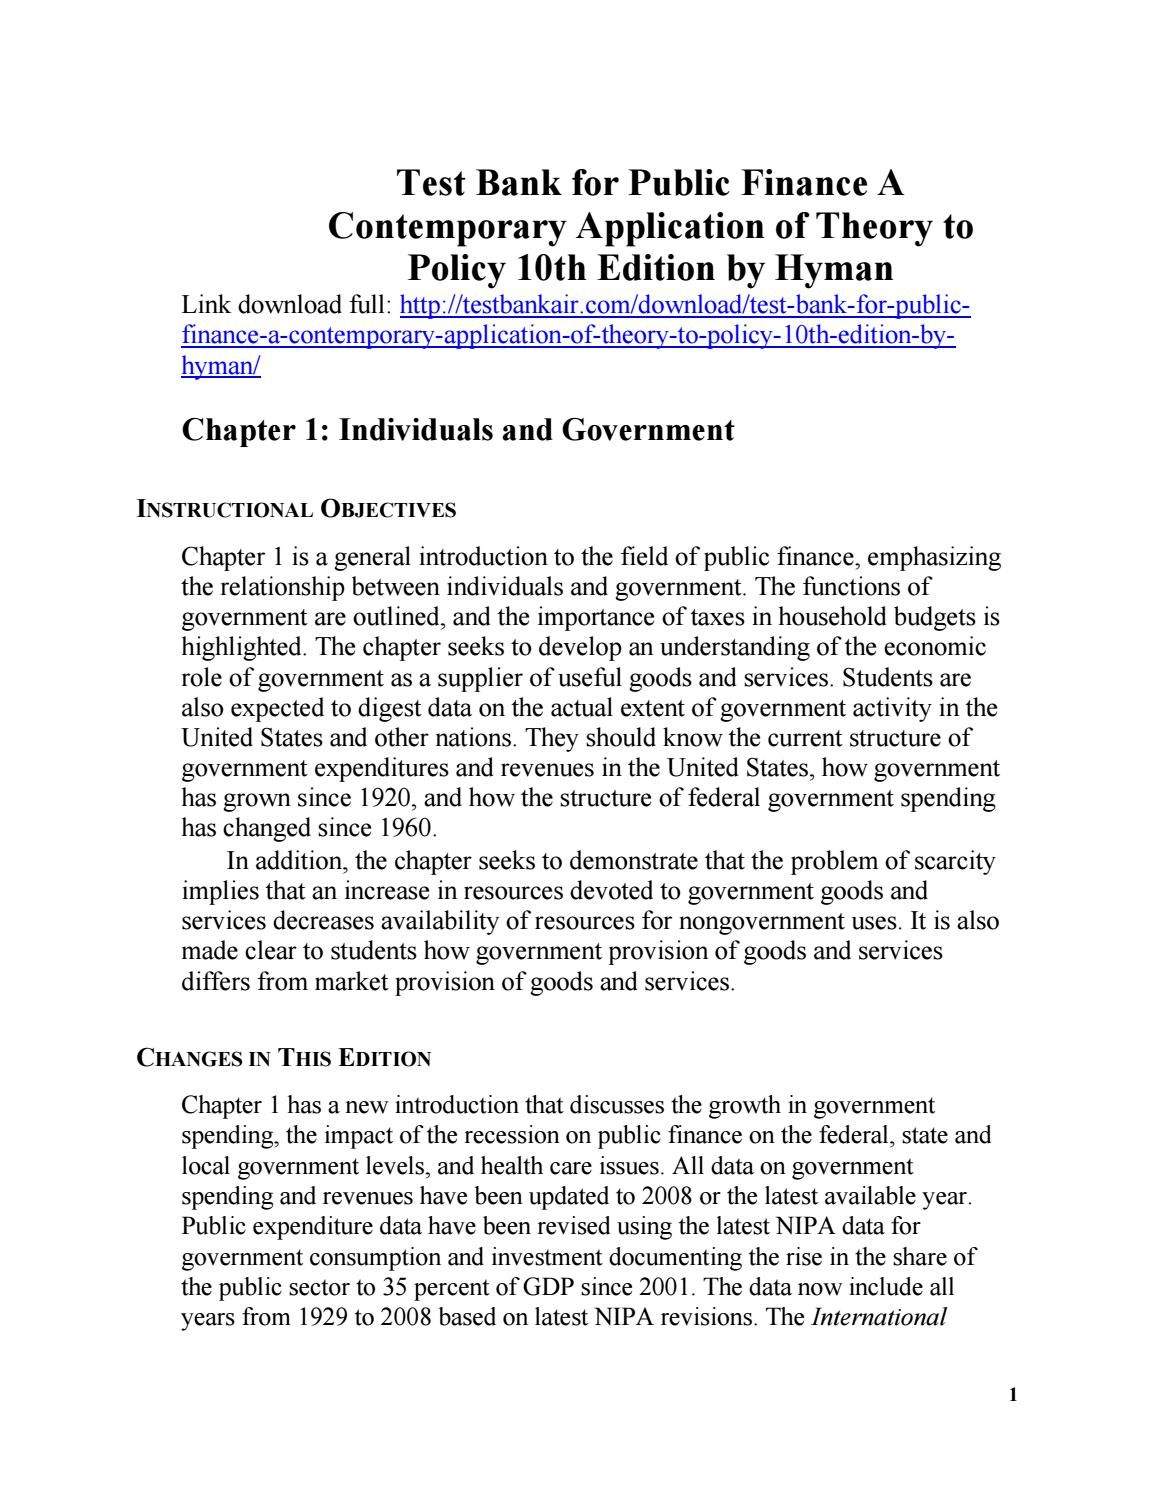 Download test bank for public finance a contemporary application of download test bank for public finance a contemporary application of theory to policy 10th edition by fandeluxe